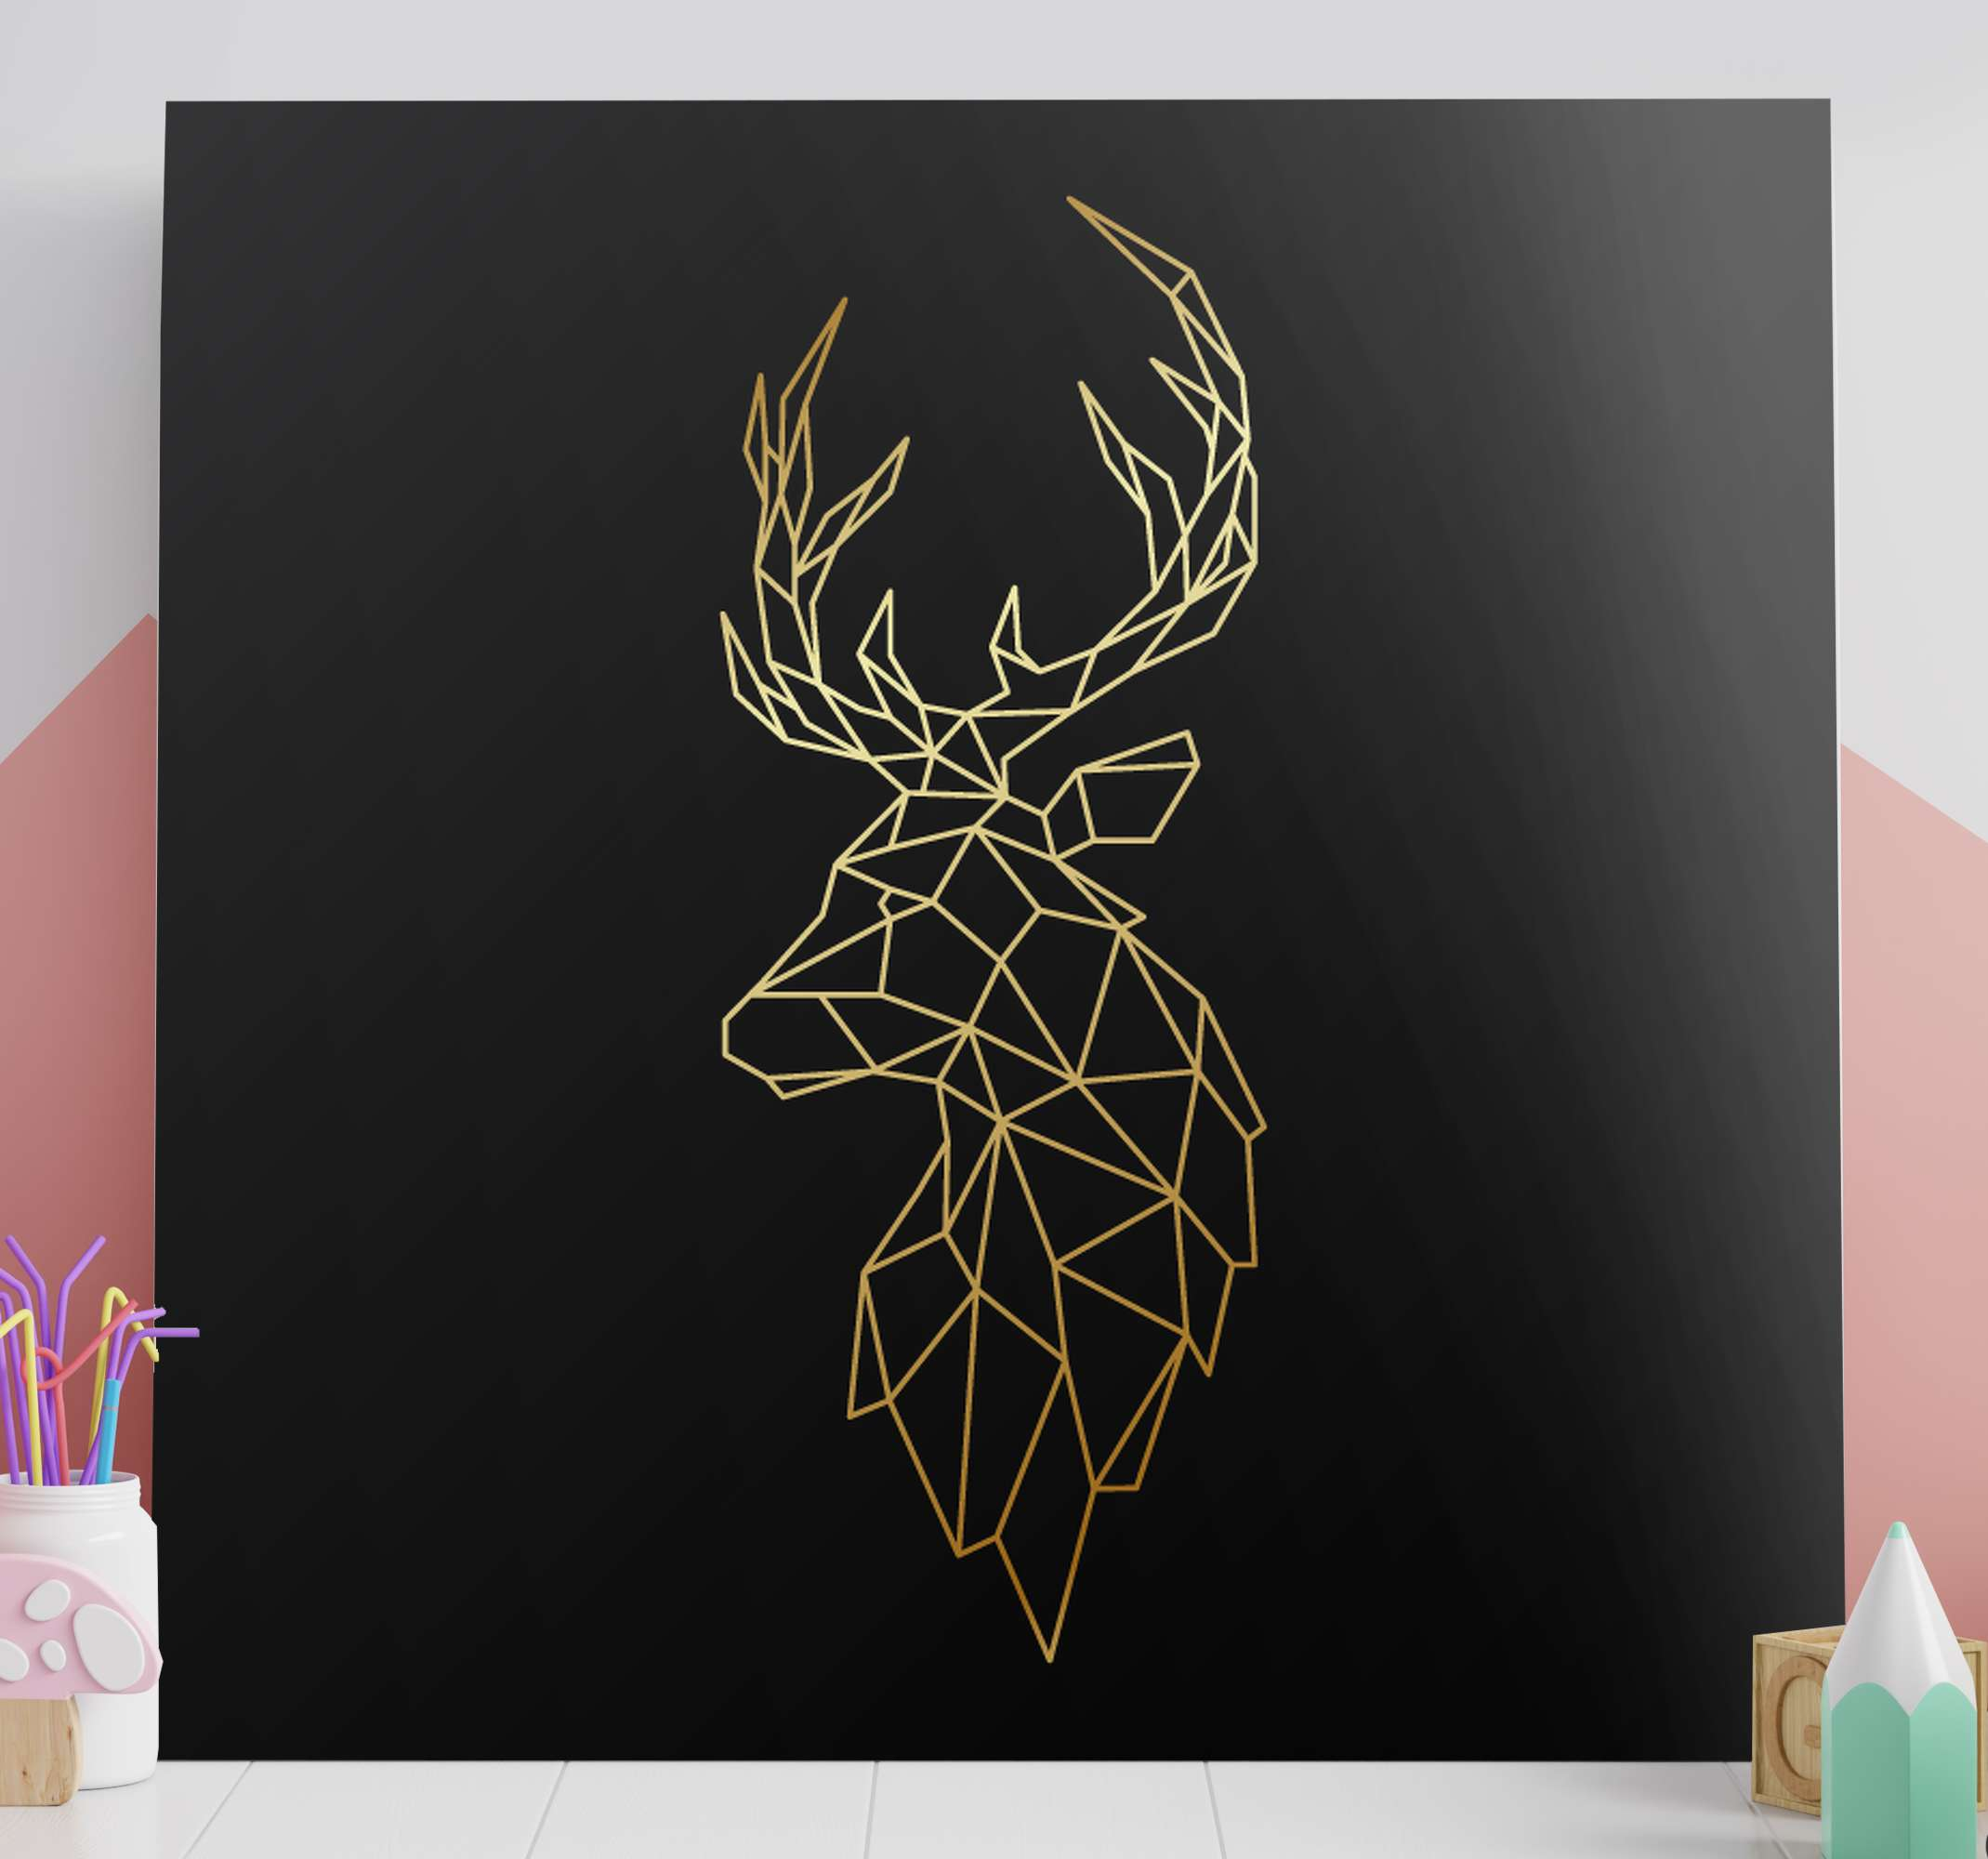 TenStickers. Golden origami deer Stag canvas prints. An origami deer canvas art print on solid black background. . Made of top quality material, durable, resistant to fading and light reflection.